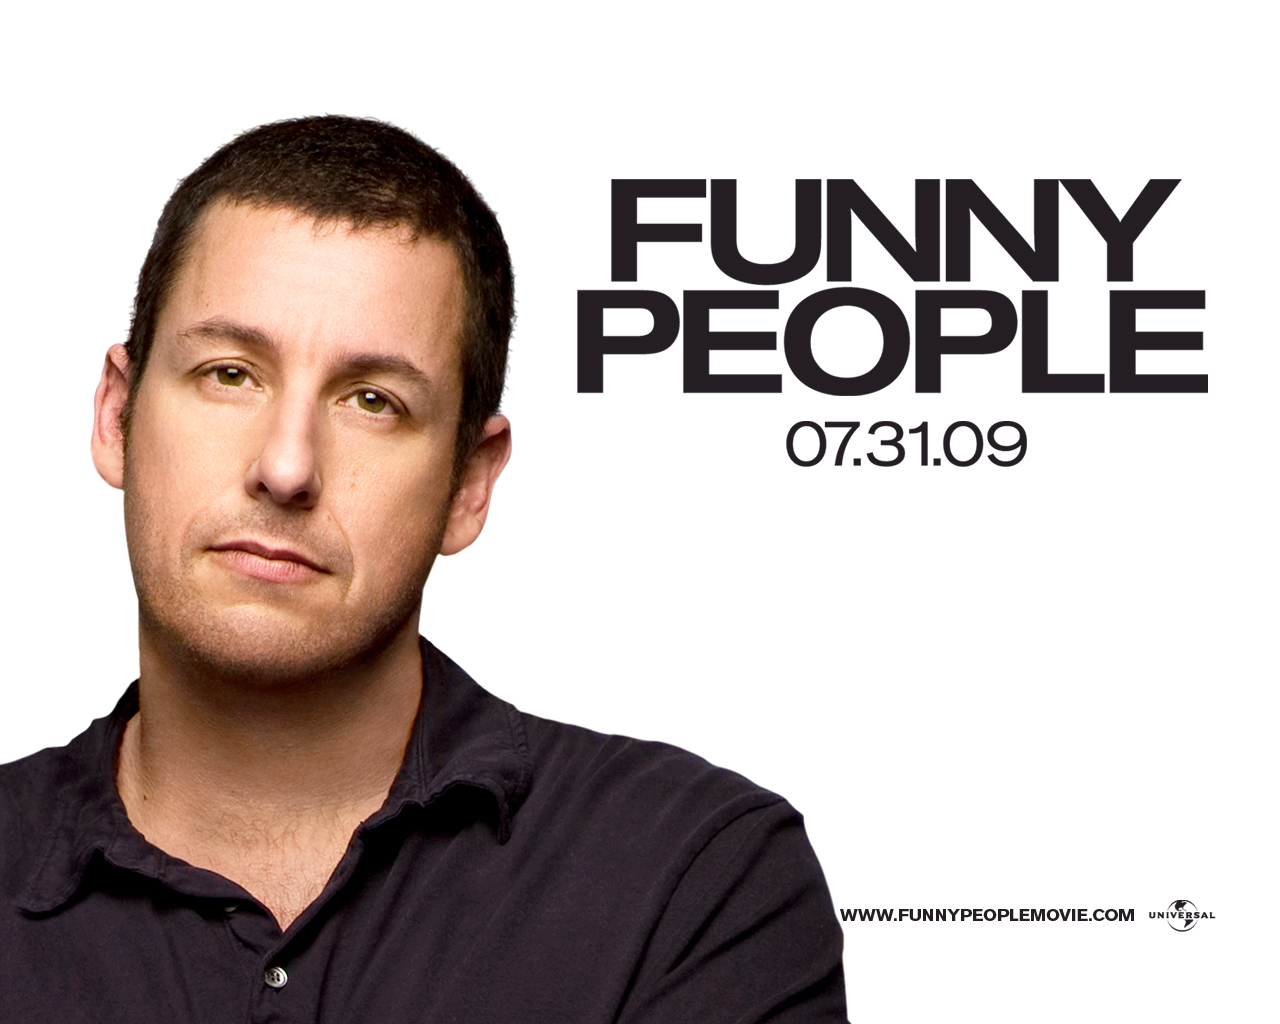 adam sandler wallpaper - adam sandler wallpaper (9837046) - fanpop